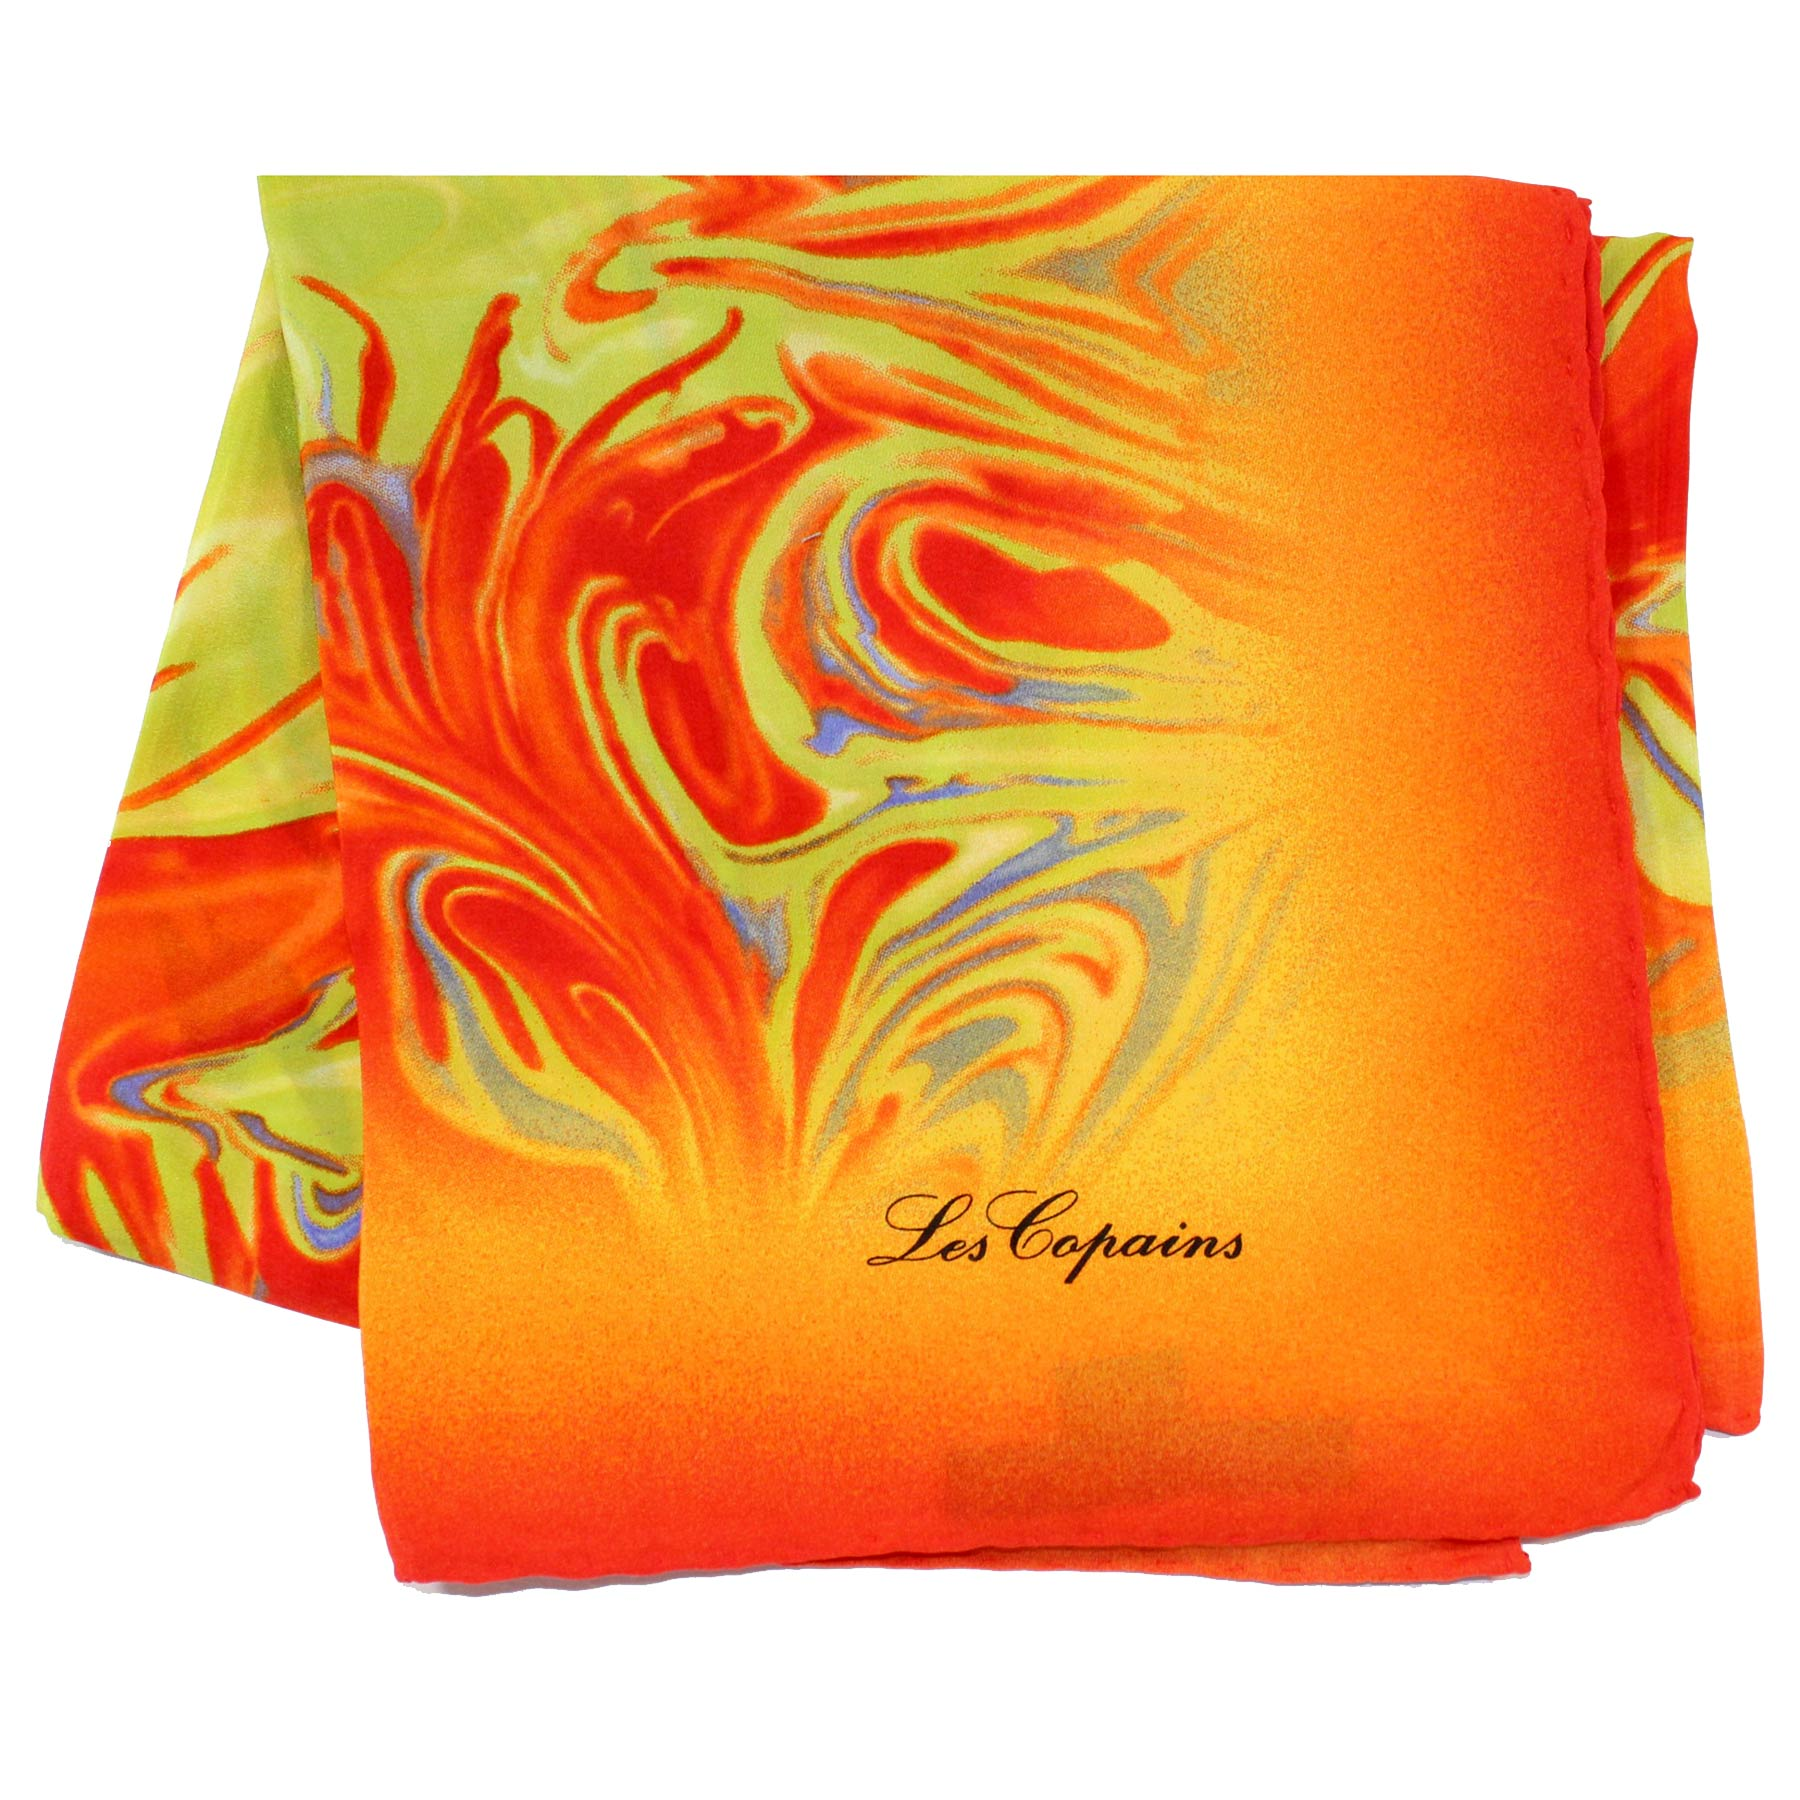 Les Copains Scarf Orange Lime Design